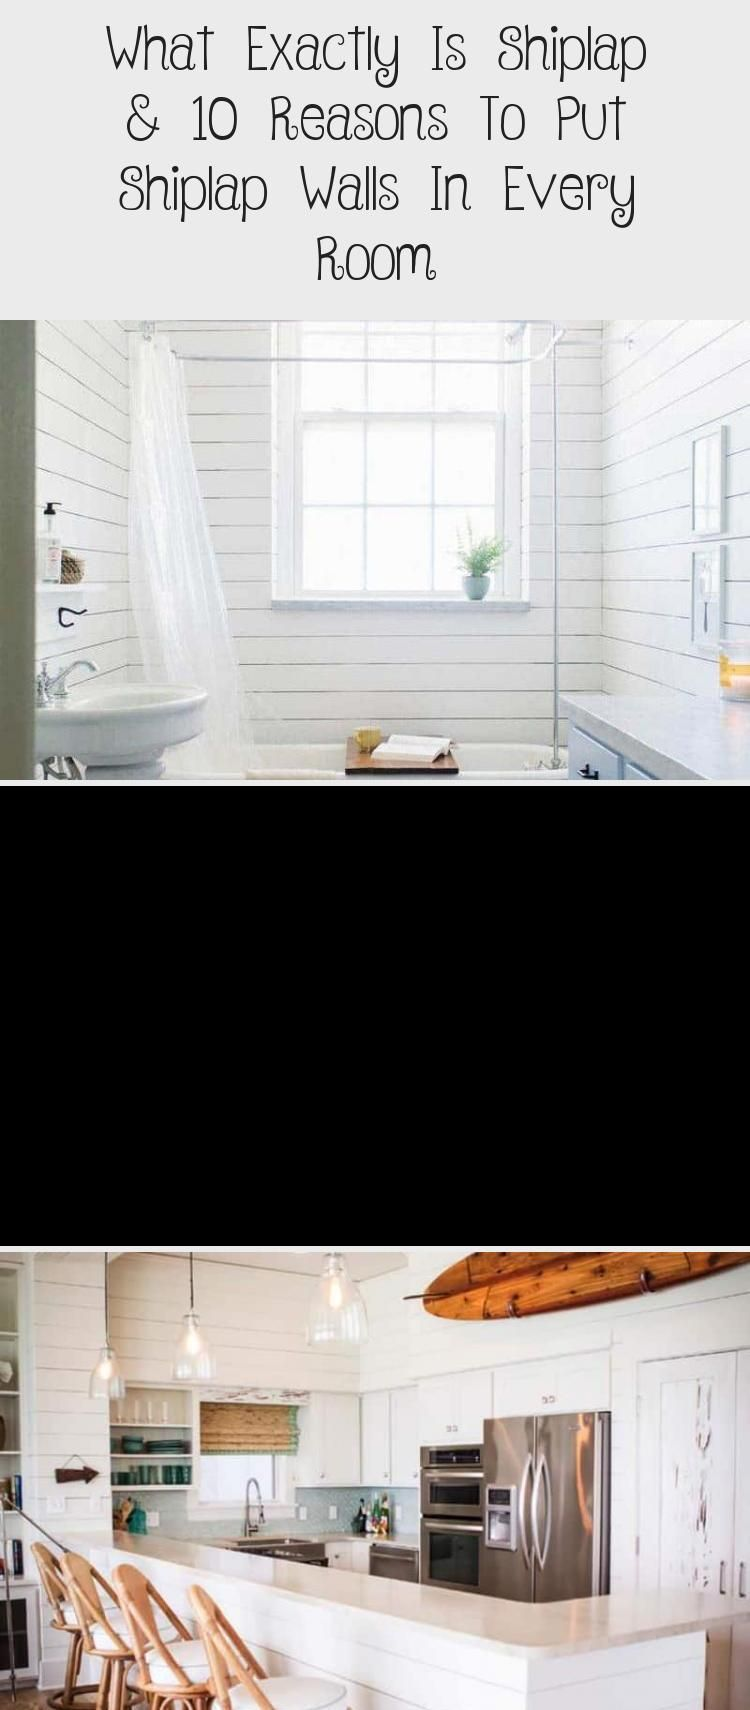 Shiplap Is A Wooden Sheathing That Is Used For The Construction Of Sheds And Other Forms Of Buildings It Is Mostly Used As In 2020 Ship Lap Walls Shiplap Rustic House